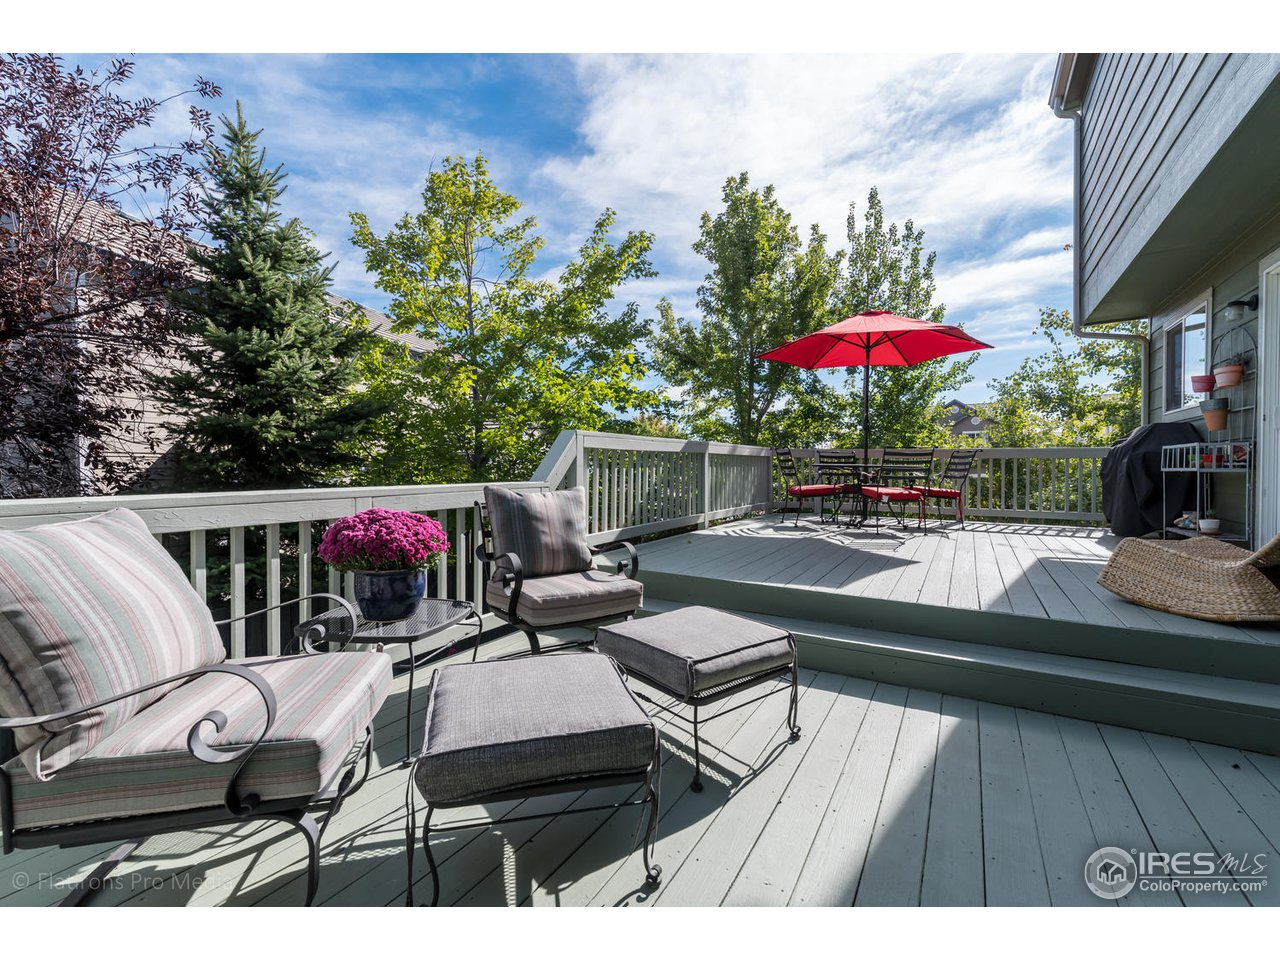 Large deck ideal for entertaining